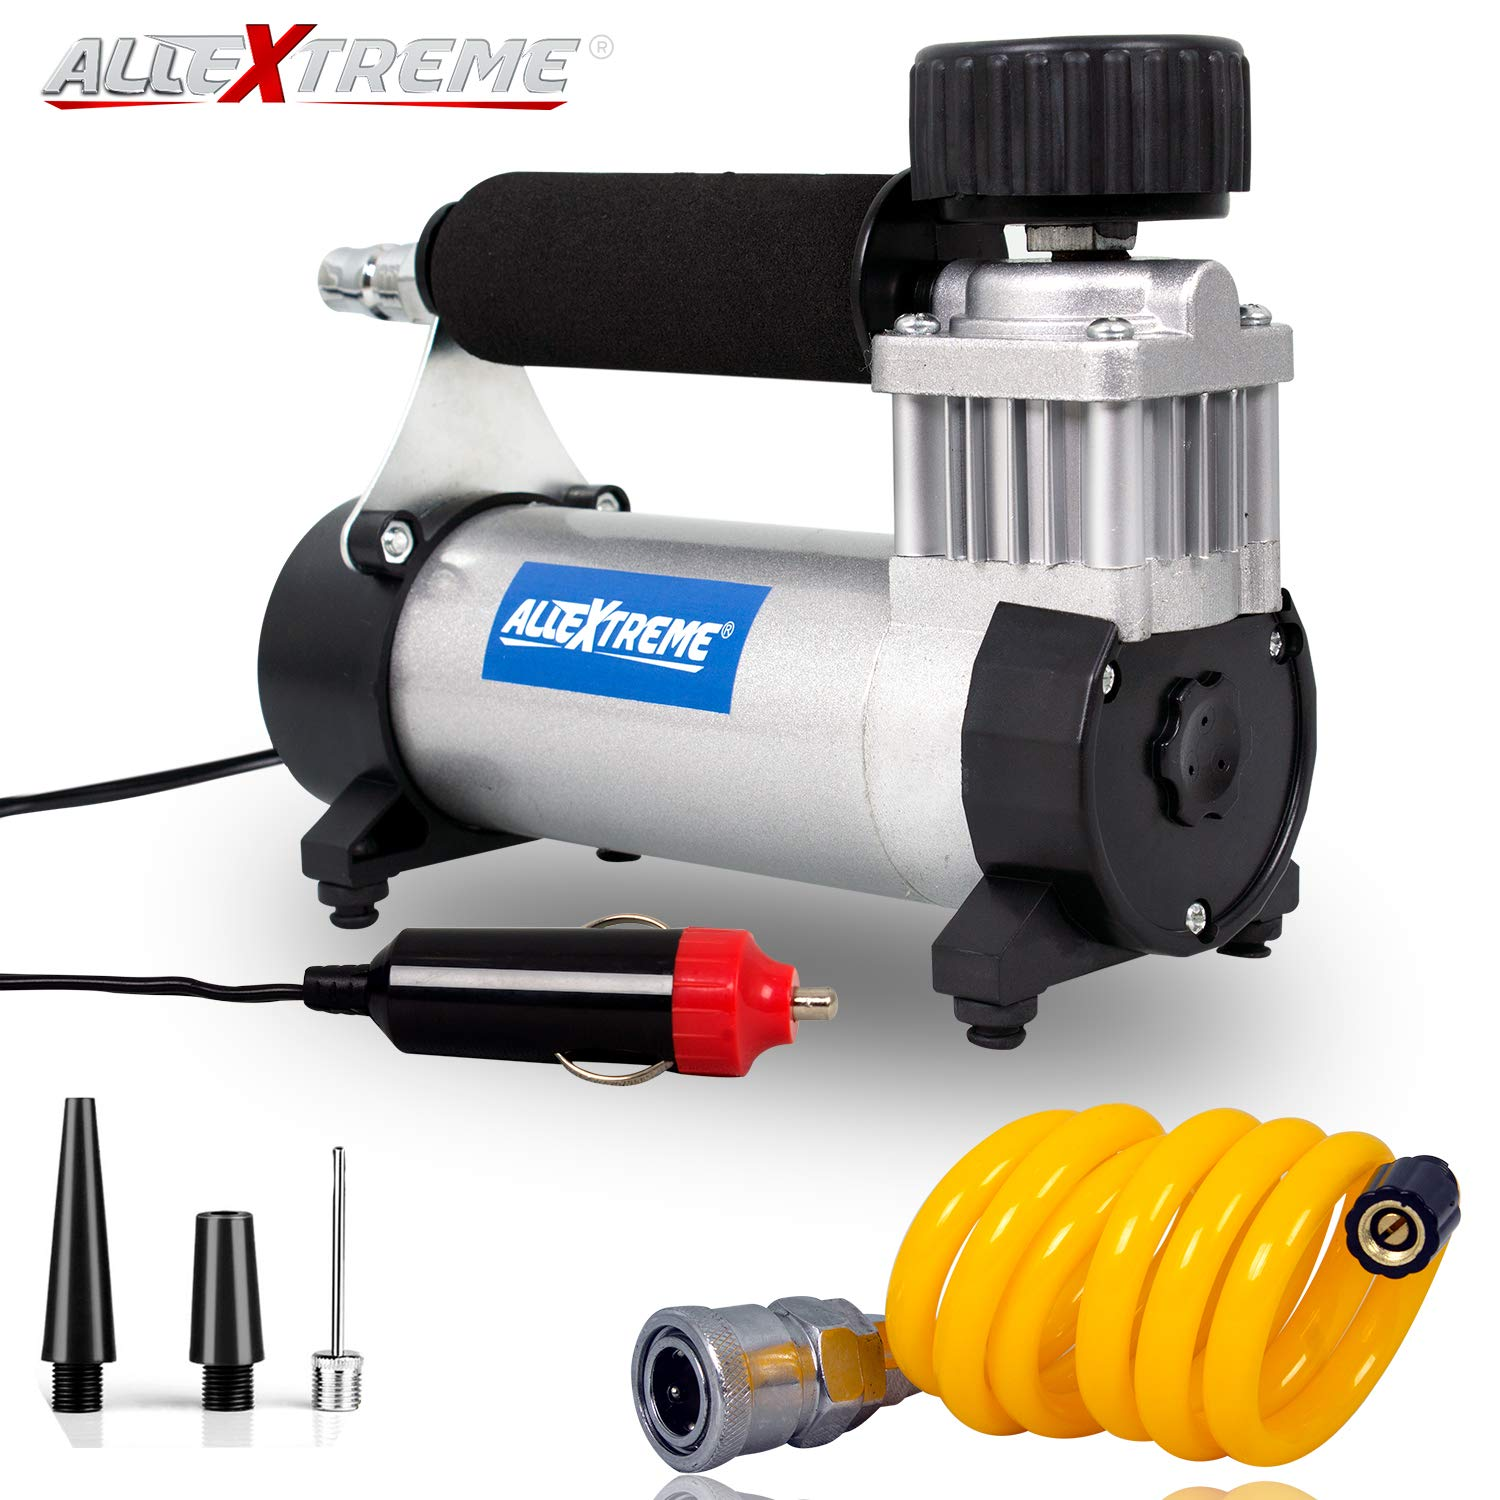 AllExtreme AE-8300K Portable Air Compressor Pump 12V Electric Heavy Duty Tyre Inflator with Tool Box Kit, Cigratte Lighter Plug and Extension Air Hose (150 PSI, 1 Year Warranty)